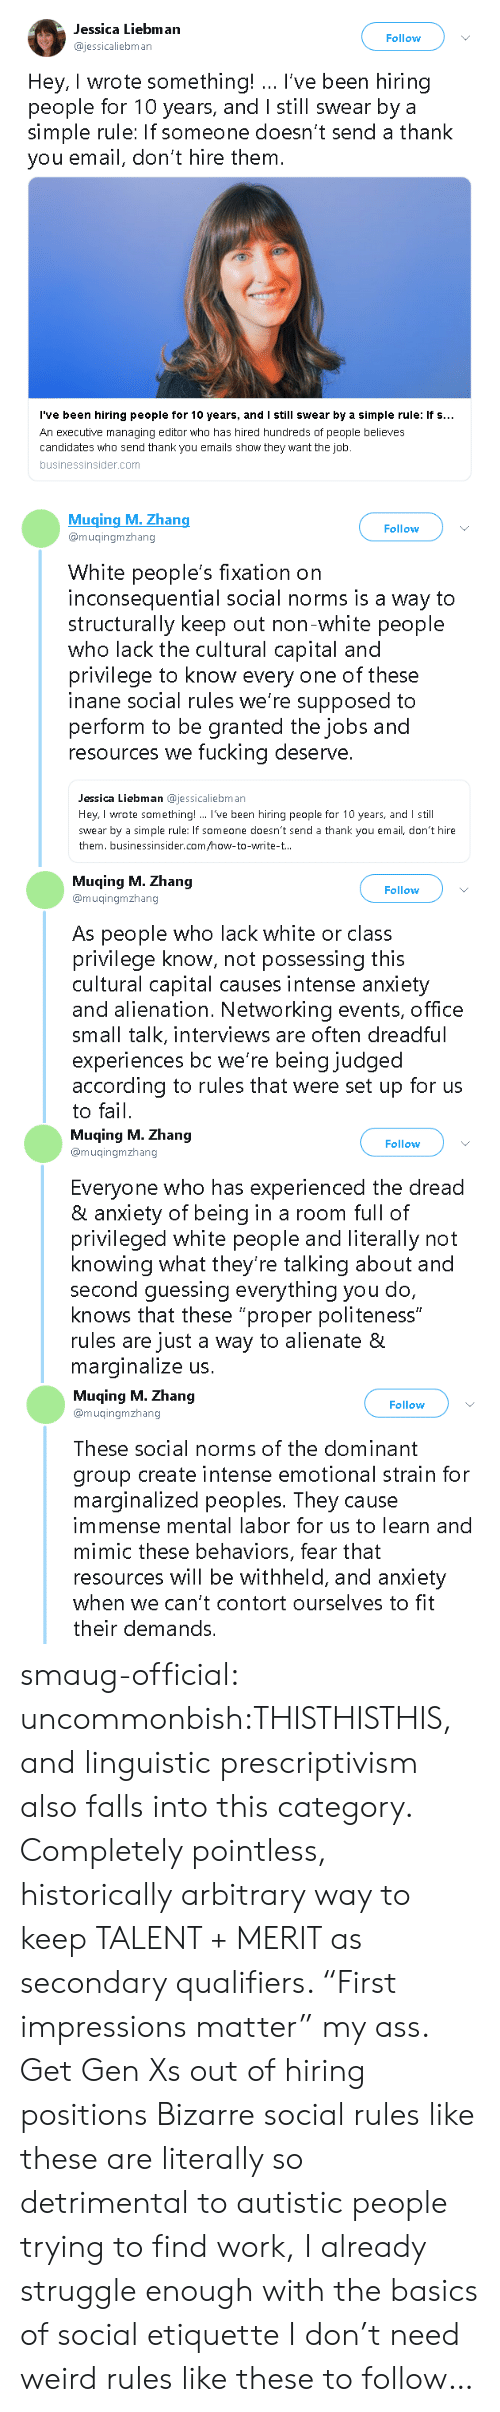 "norms: Jessica Liebman  ajessicaliebman  Follow  Hey, I wrote something! I've been hiring  people for 10 years, and I still swear bya  simple rule: If someone doesn't send a thank  you email, don't hire them.  I've been hiring people for 10 years, and I still swear by a simple rule: if s  An executive managing editor who has hired hundreds of people believes  candidates who send thank you emails show they want the job.  businessinsider.com   Muging M. Zhang  @muqingmzhang  Follow  White people's fixation on  inconsequential social norms is a way to  structurally keep out non-white people  who lack the cultural capital and  privilege to know every one of these  inane social rules we're supposed to  perform to be granted the jobs and  resources we fucking deserve.  Jessica Liebman @jessicaliebman  Hey, I wrote something!. I've been hiring people for 10 years, and I still  swear by a simple rule: If someone doesn't send a thank you email, don't hire  them. businessinsider.com/how-to-write-t..   Muqing M. Zhang  @muqingmzhang  Follow  As people who lack white or class  privilege know, not possessing this  cultural capital causes intense anxiety  and alienation. Networking events, office  small talk, interviews are often dreadful  experiences bc we're being judged  according to rules that were set up for us  to fail.   Muqing M. Zhang  @muqingmzhang  Follow  Everyone who has experienced the dread  & anxiety of being in a room full of  privileged white people and literally not  knowing what they're talking about and  second guessing everything you do,  knows that these ""proper politeness""  rules are just a way to alienate &  marginalize us.   Muqing M. Zhang  Follow  muingmzhang  These social norms of the dominant  group create intense emotional strain for  marginalized peoples. They cause  immense mental labor for us to learn and  mimic these behaviors, fear that  resources will be withheld, and anxiety  when we can't contort ourselves to fit  their demands. smaug-official:  uncommonbish:THISTHISTHIS, and linguistic prescriptivism also falls into this category. Completely pointless, historically arbitrary way to keep TALENT + MERIT as secondary qualifiers. ""First impressions matter"" my ass. Get Gen Xs out of hiring positions  Bizarre social rules like these are literally so detrimental to autistic people trying to find work, I already struggle enough with the basics of social etiquette I don't need weird rules like these to follow…"